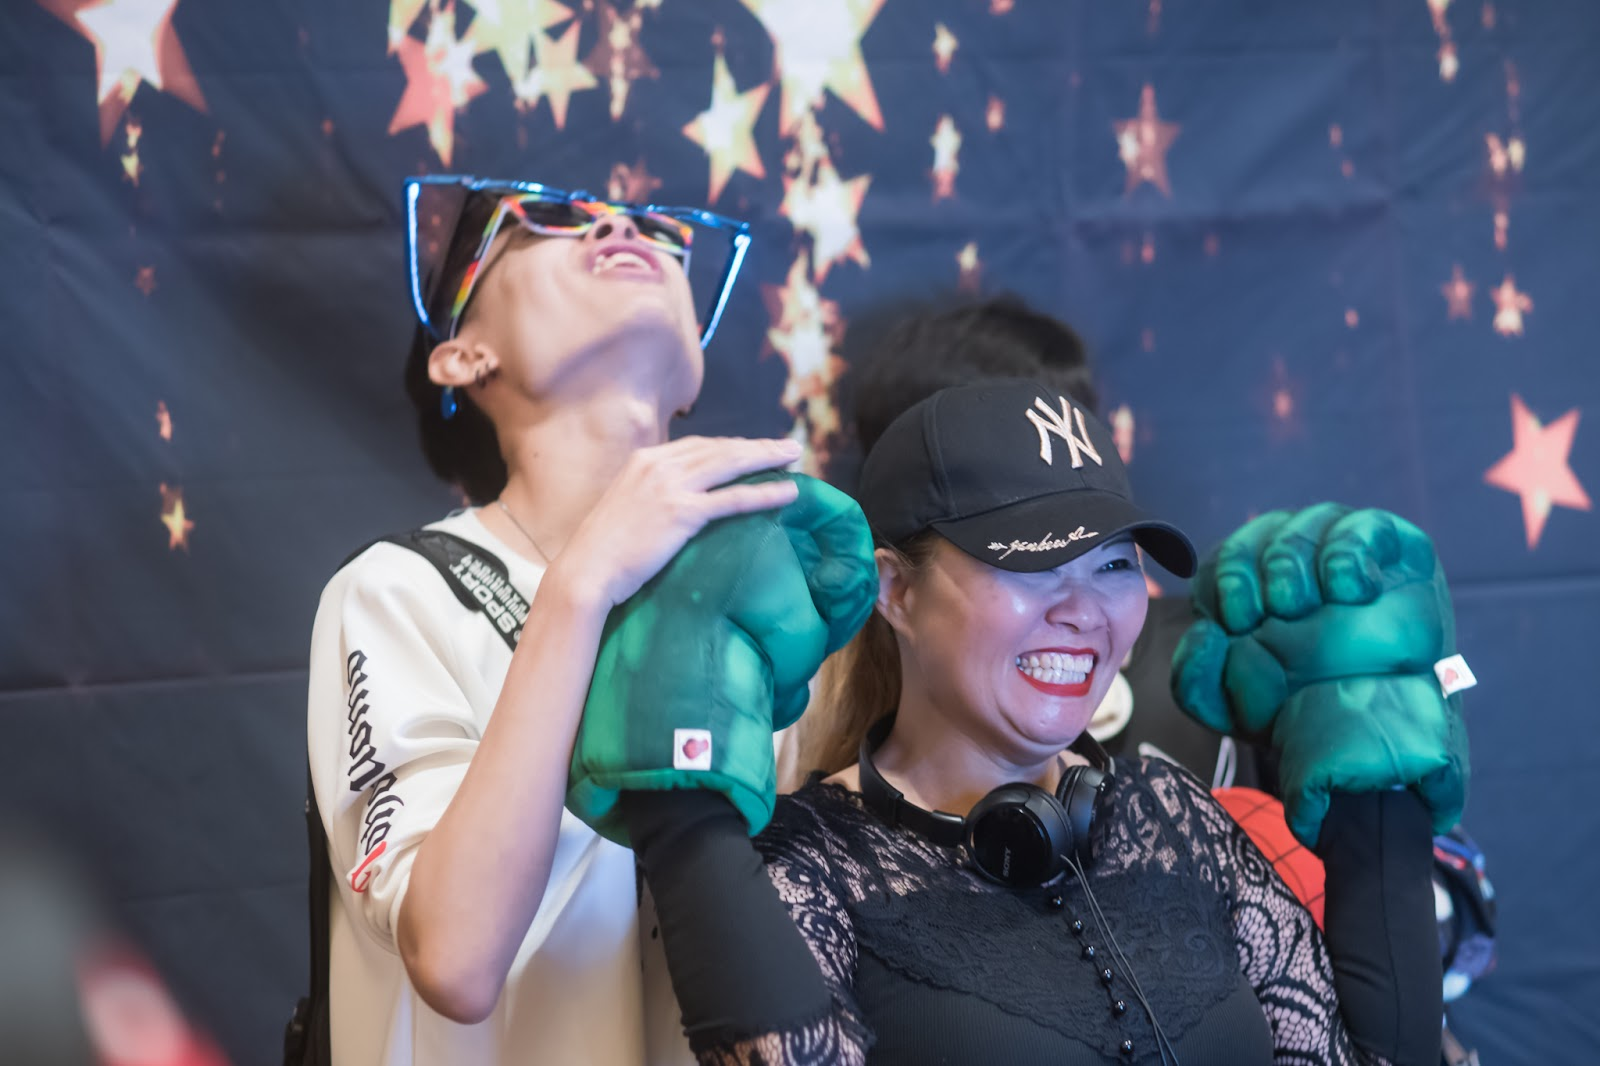 mother and son enjoying photo booth props